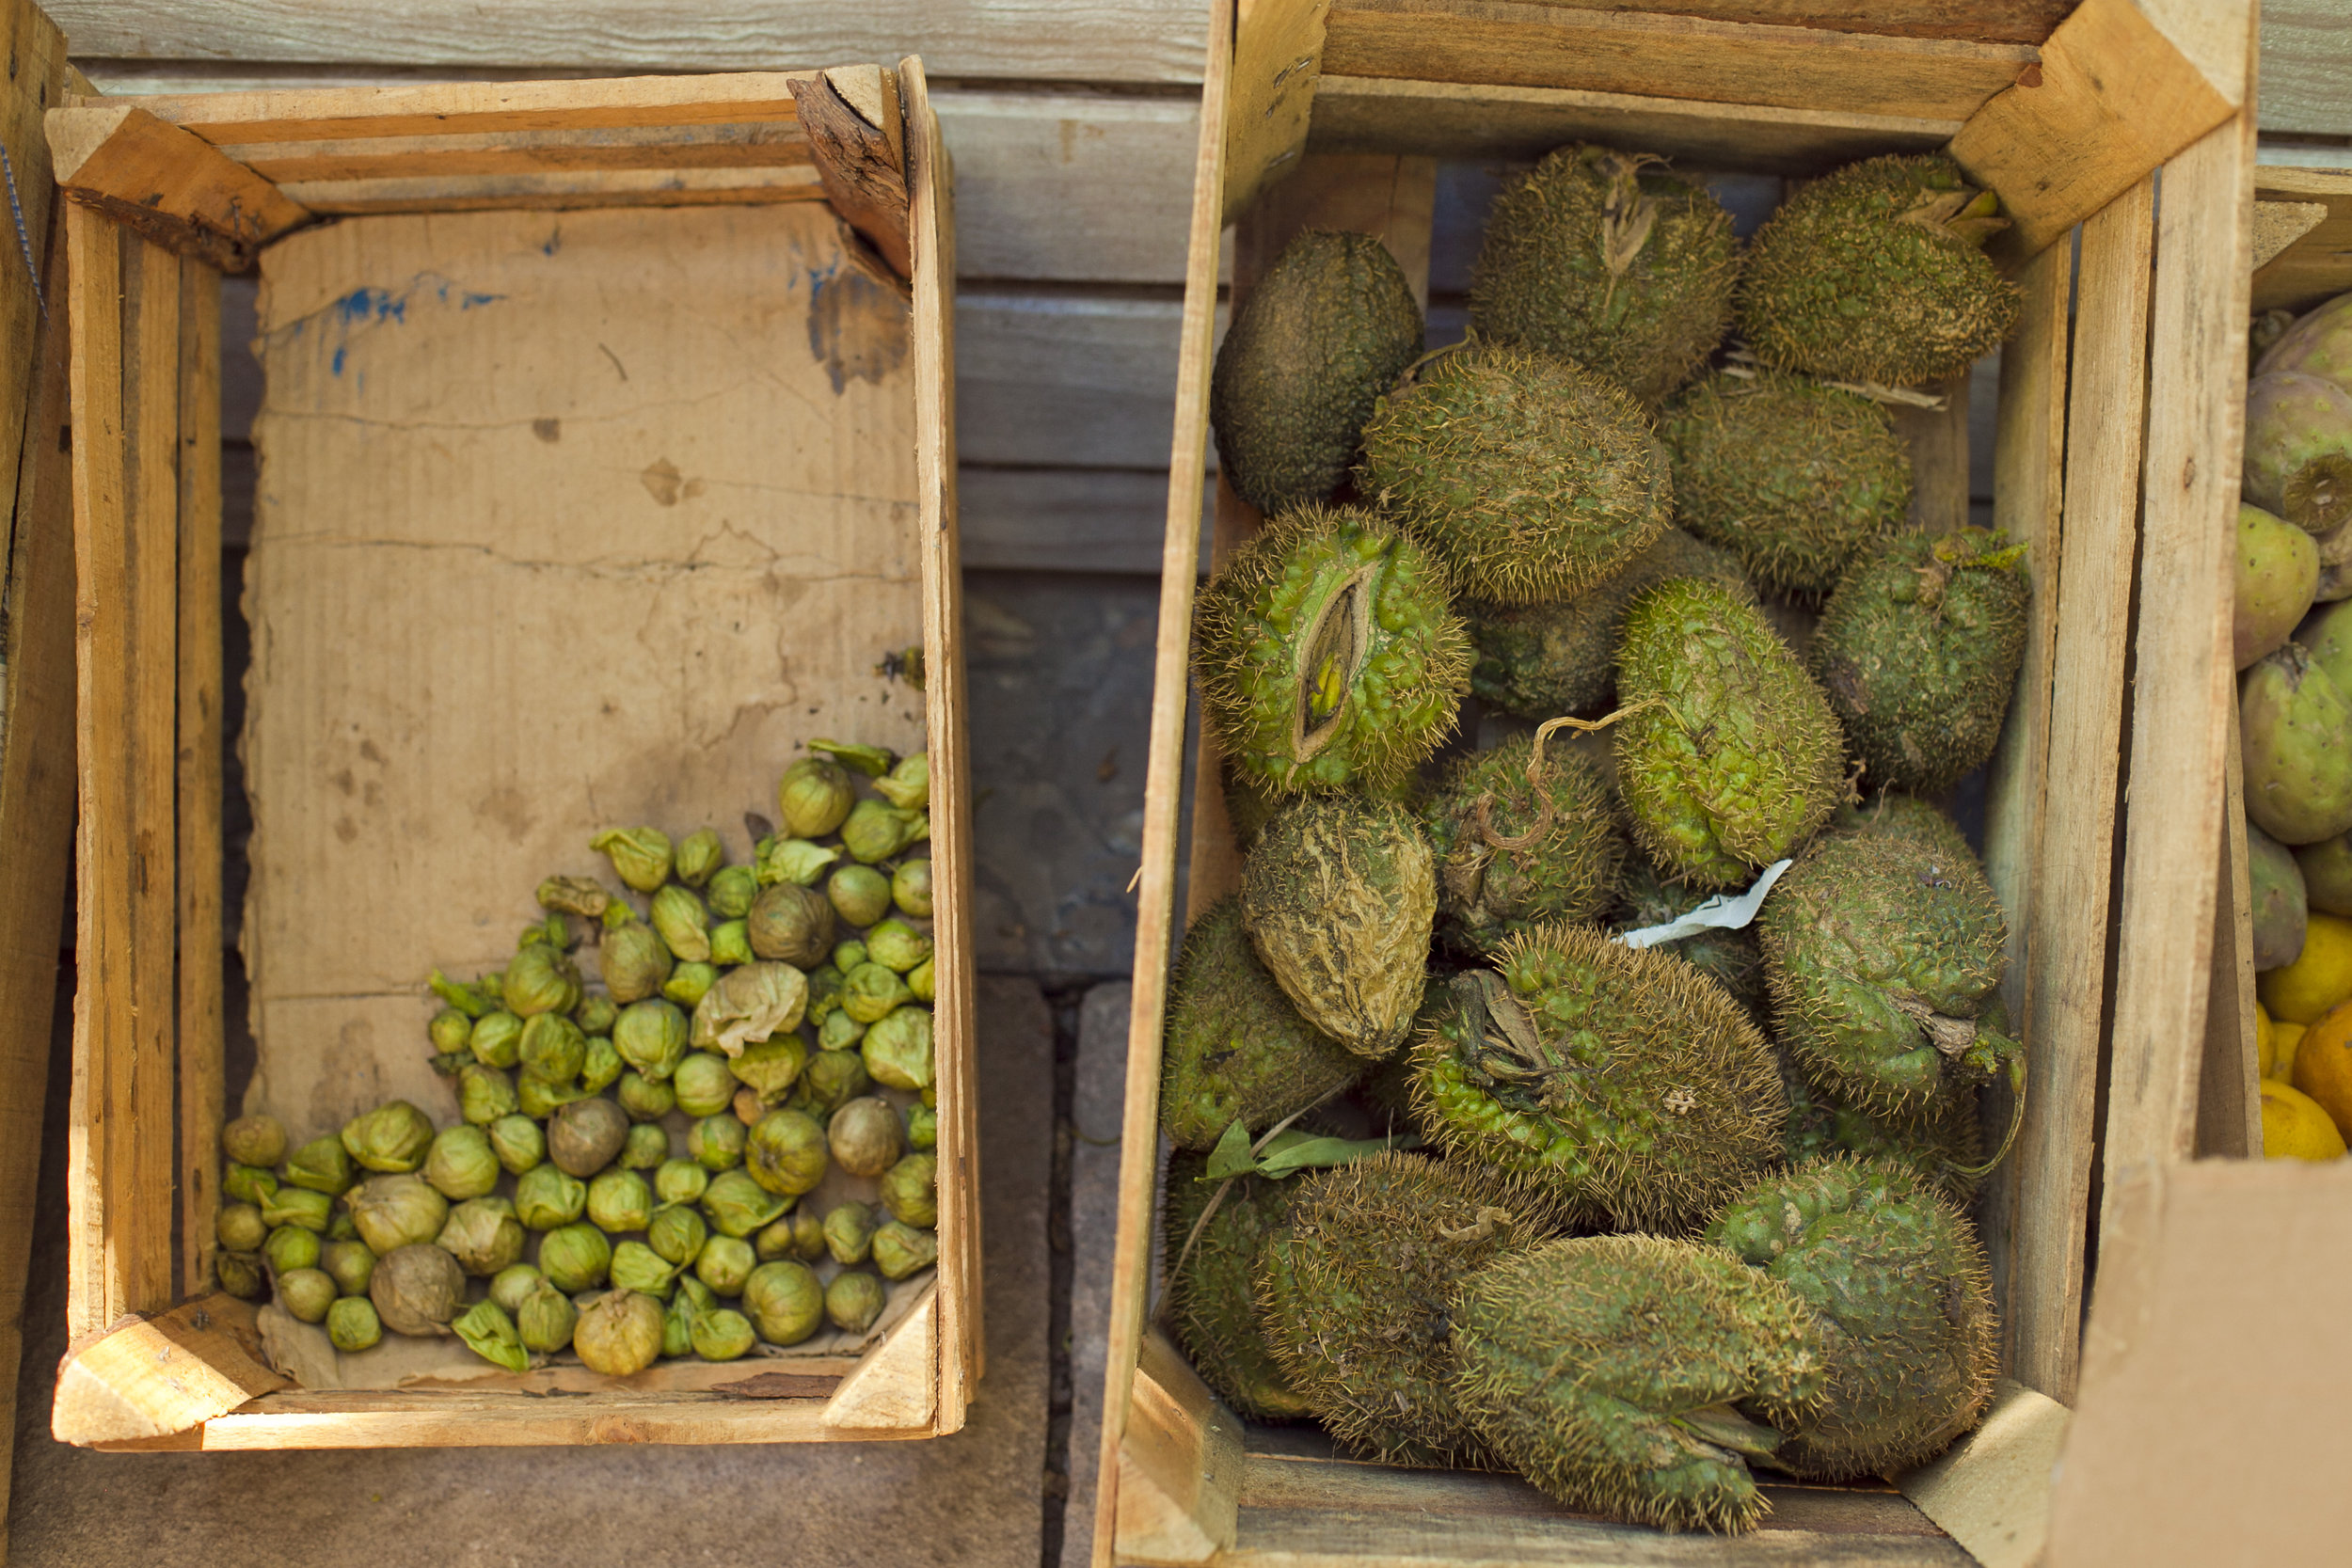 Copy of boxes of tomatillo and chayote